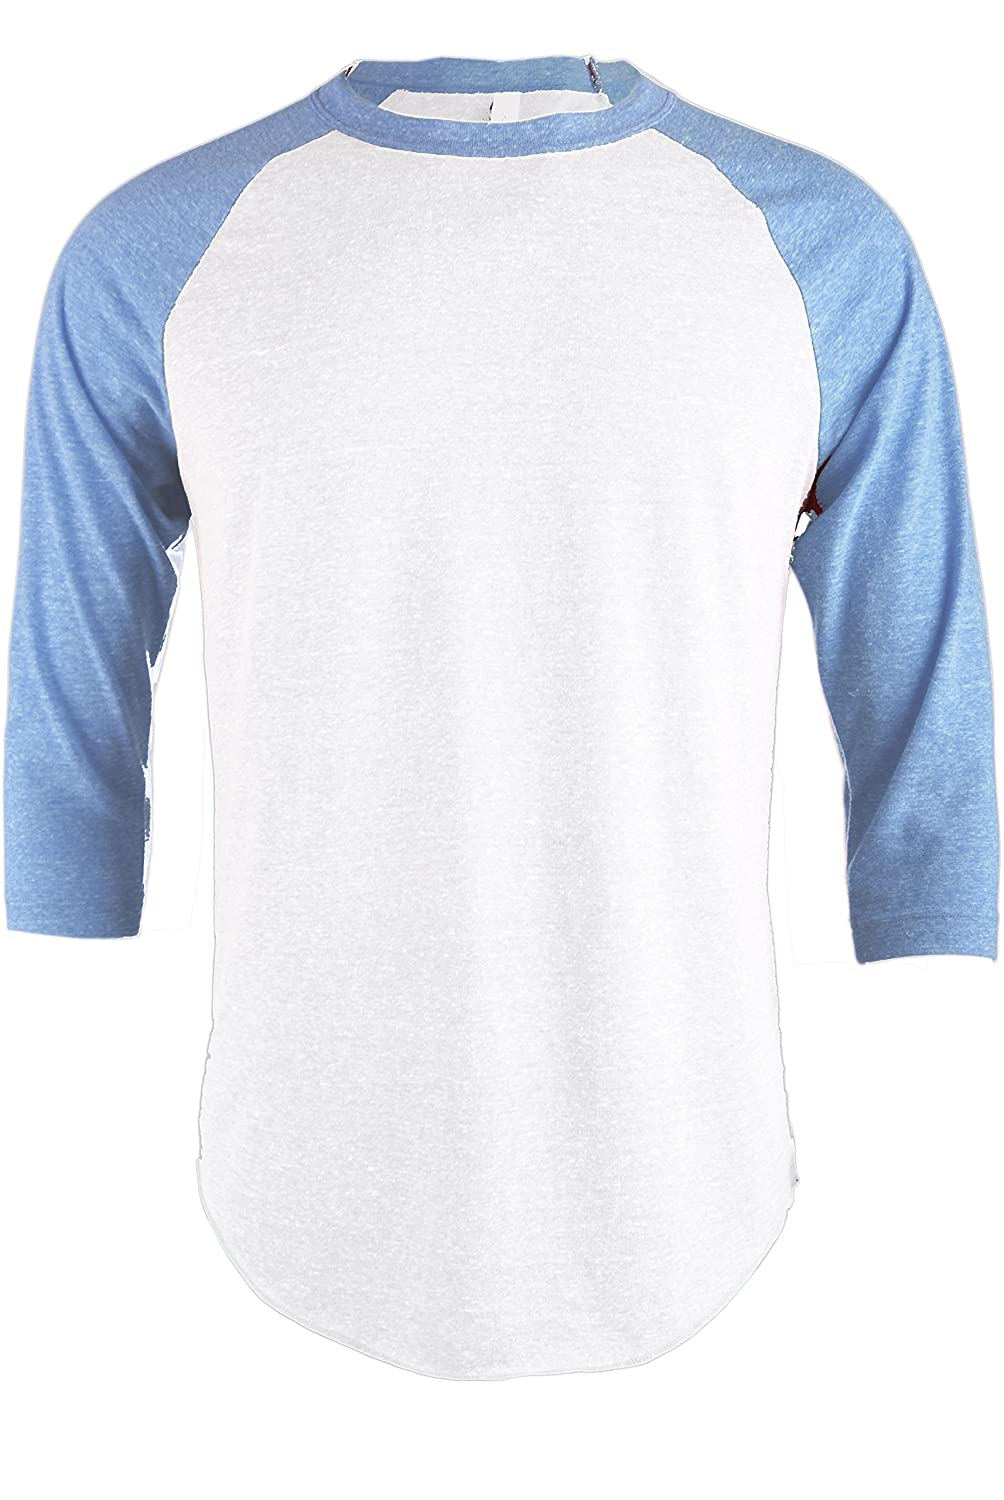 5079a53feea TL Men s Basic 3 4 Sleeve Baseball Top Fitted Tri-Blend Raglan T-Shirt at  Amazon Men s Clothing store